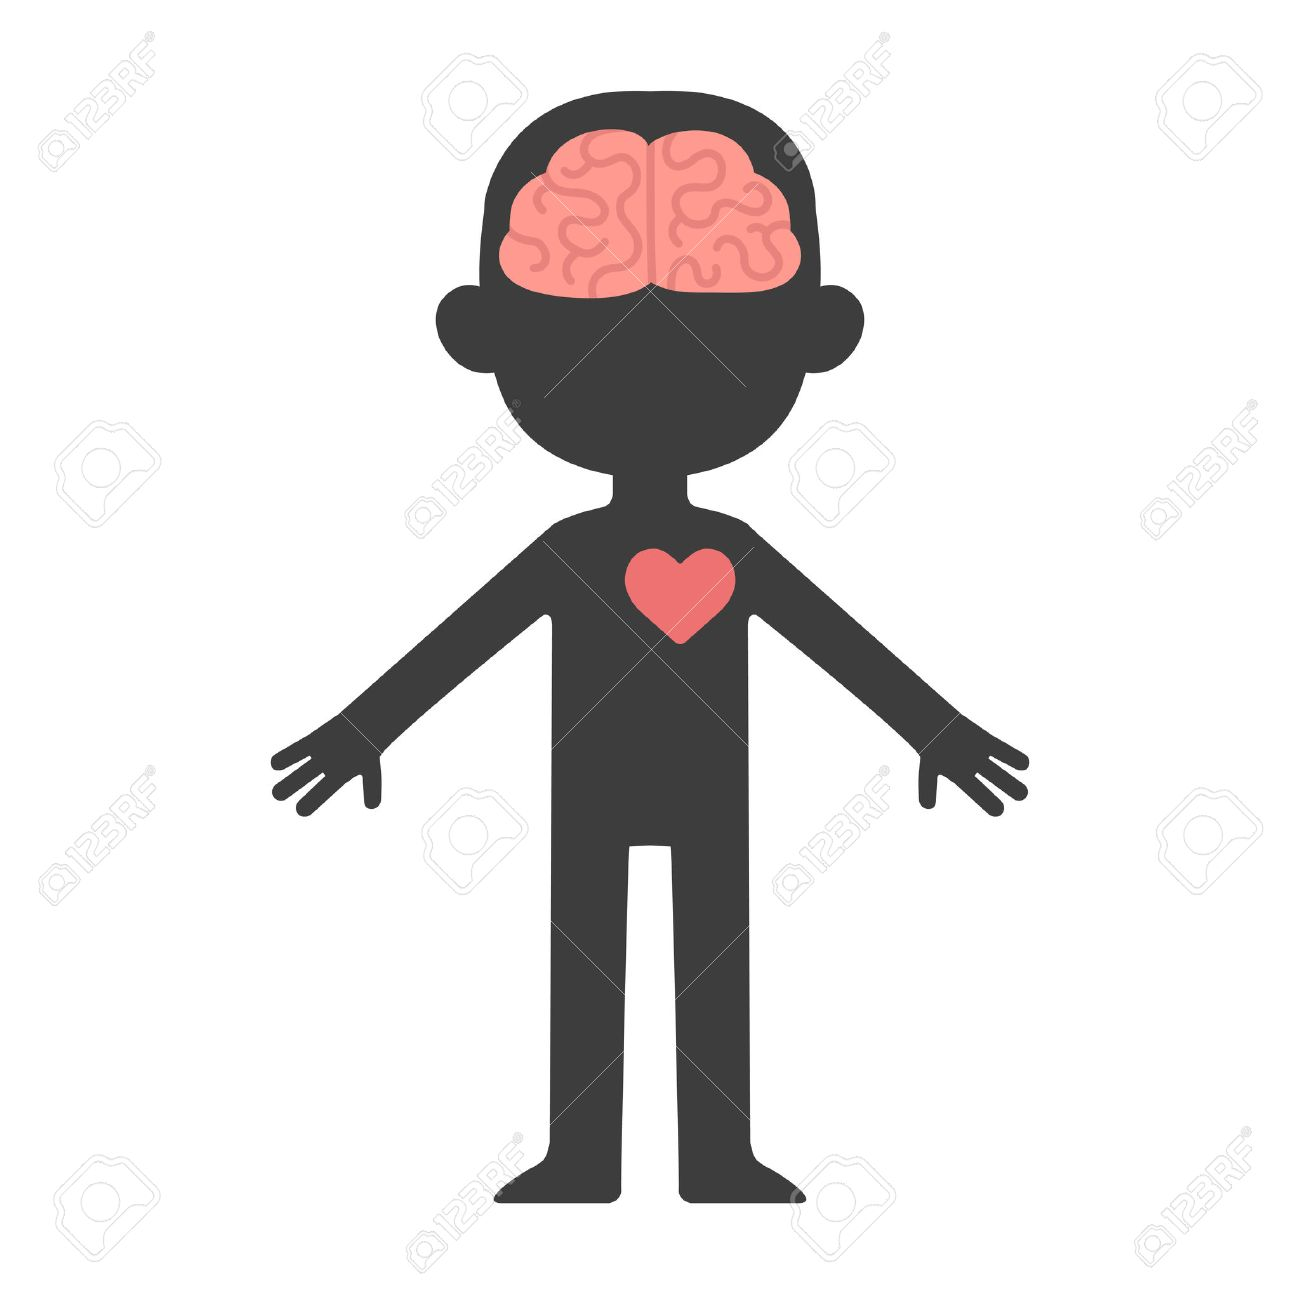 Cartoon human body silhouette with visible brain and heart..